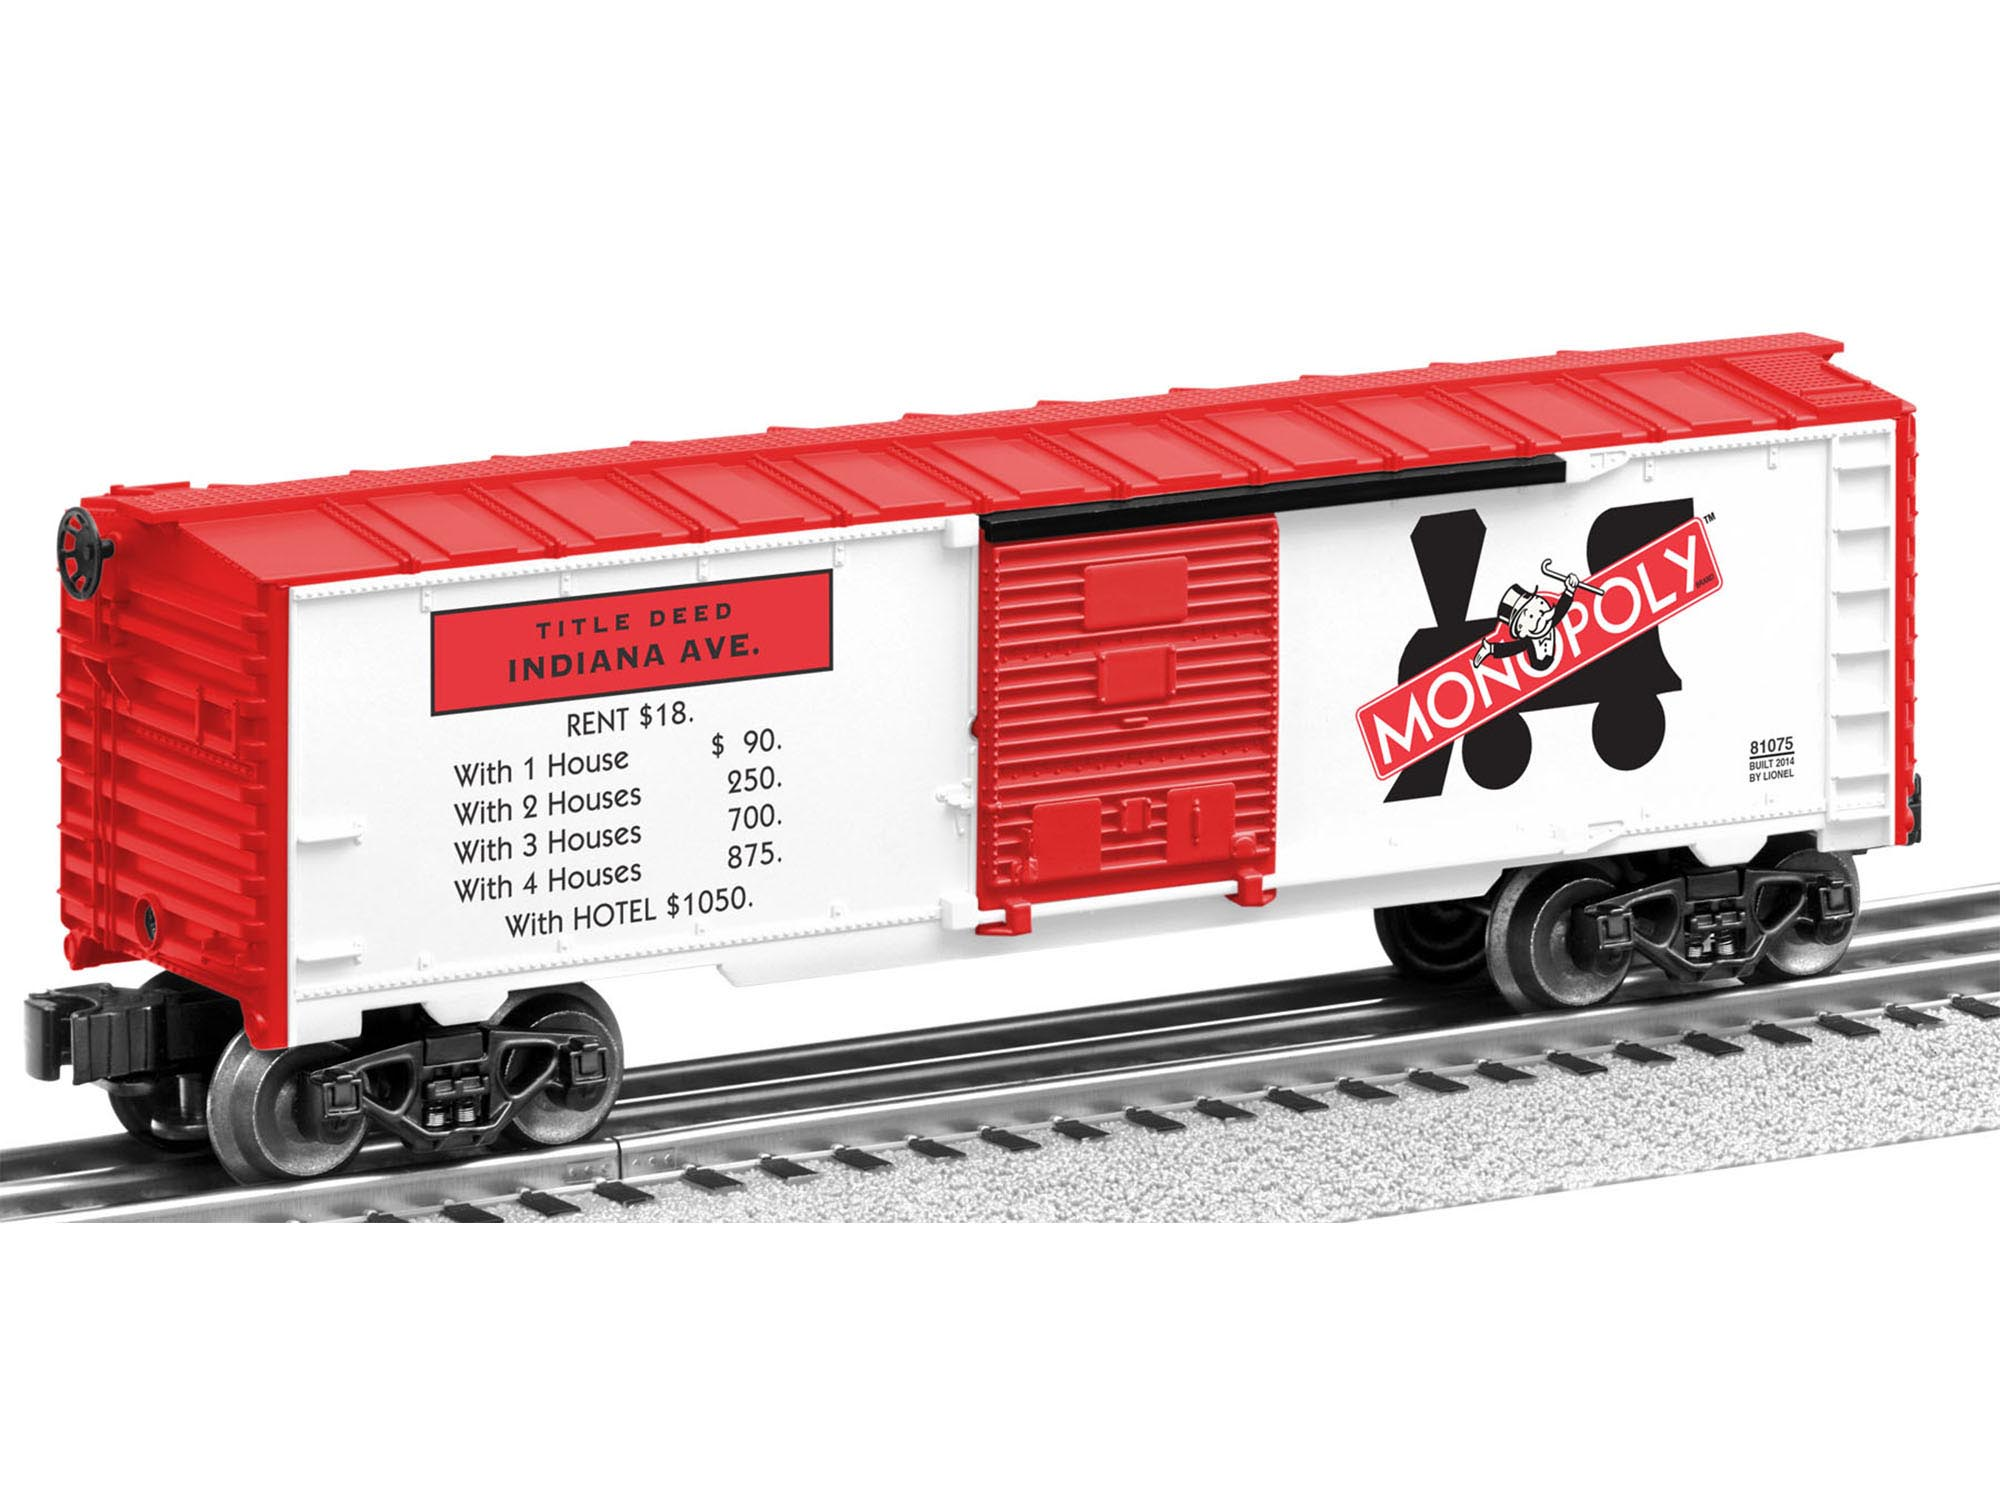 6-81073 MONOPOLY BOXCAR 2-PACK (VENTNOR AVE & INDIANA AVE)